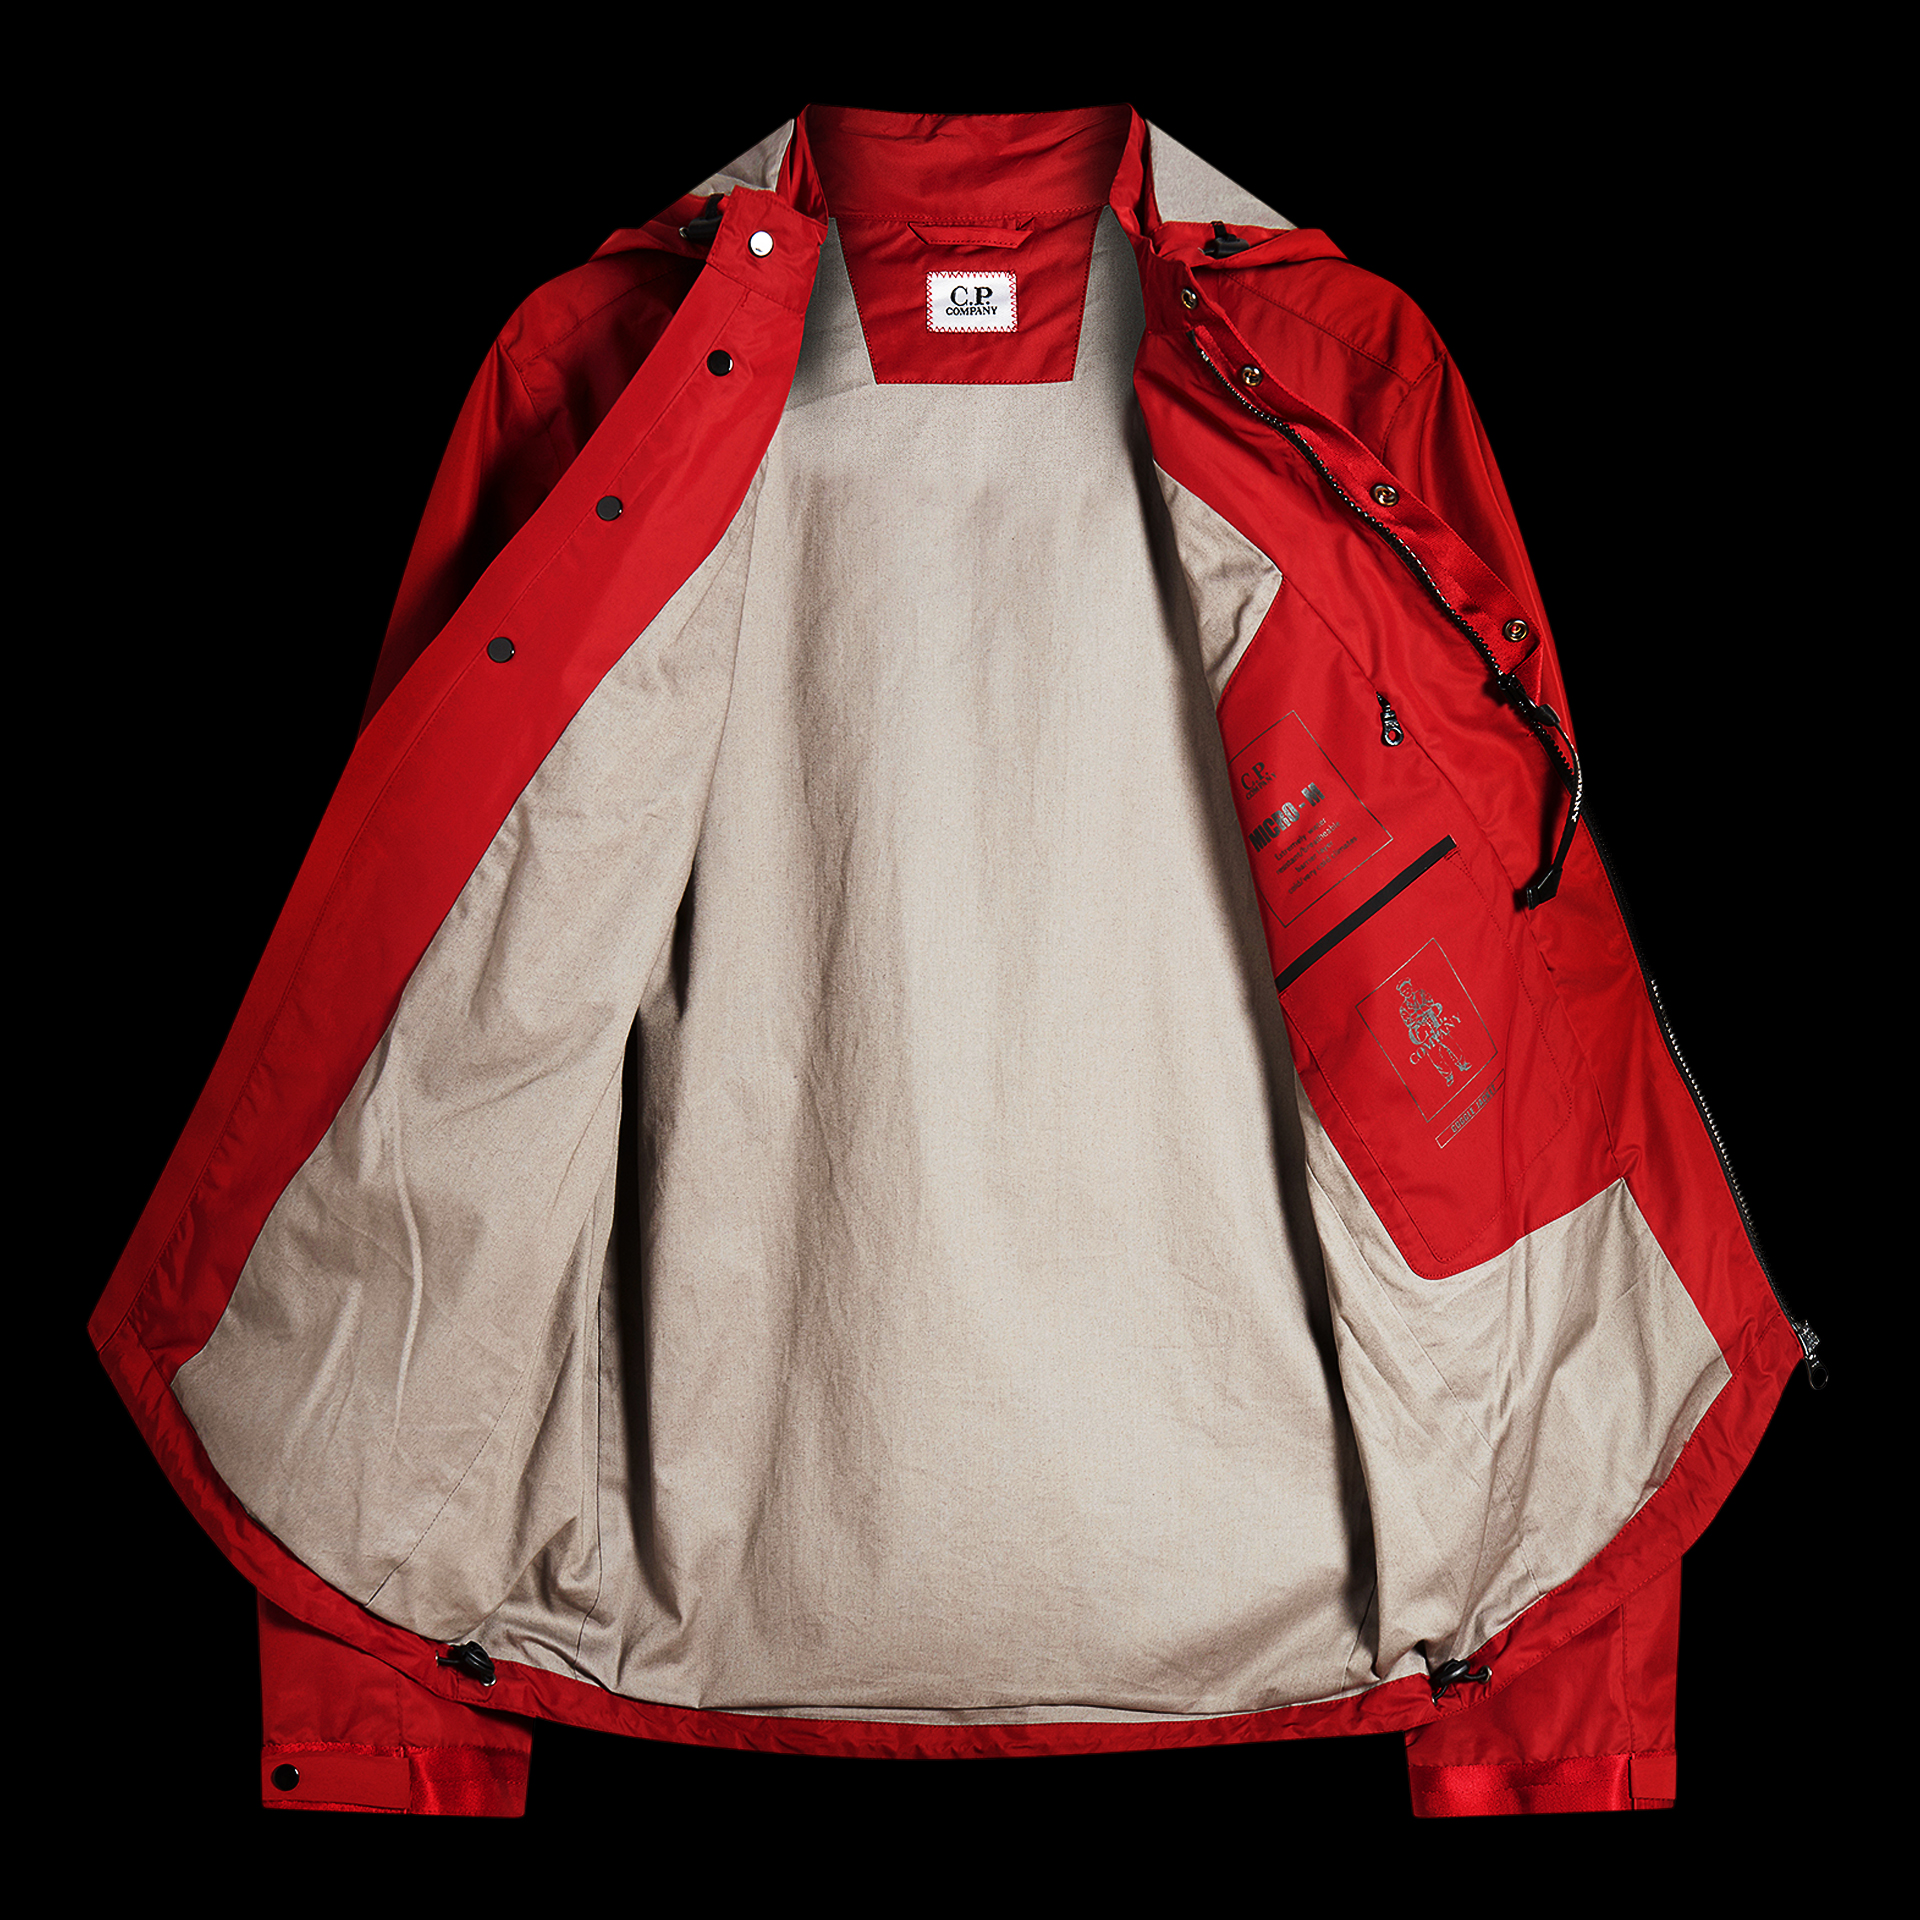 Red C.P. Company rain coat on black background open front shot